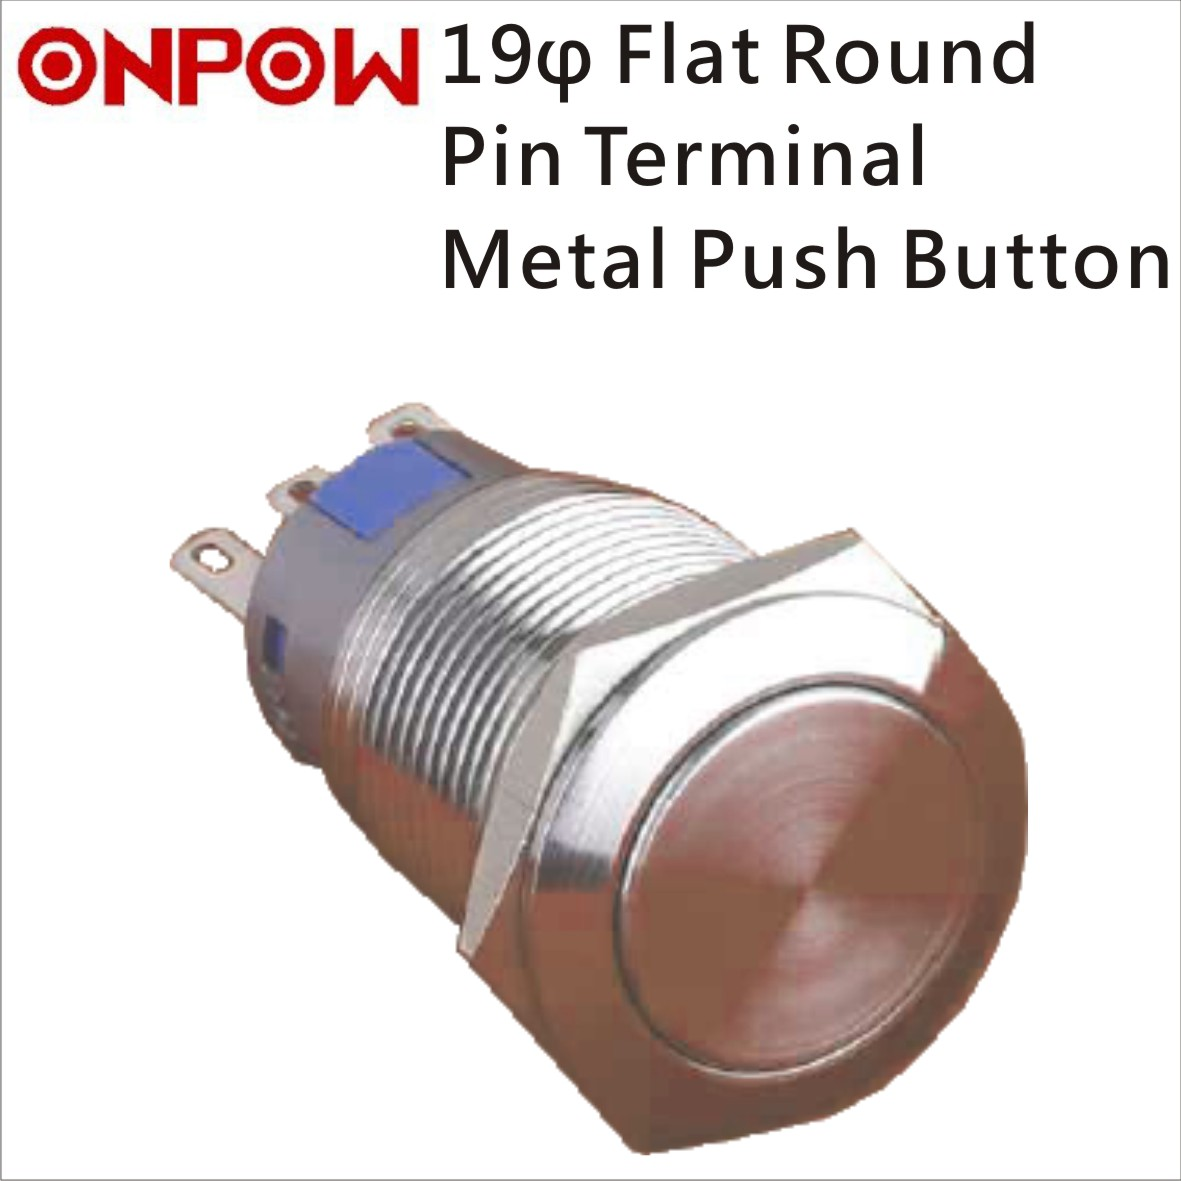 Taiwan Onpow 19mm Metal Push Button Switch Flat Round Enproteko Co Switches Large 10mm Latching Red